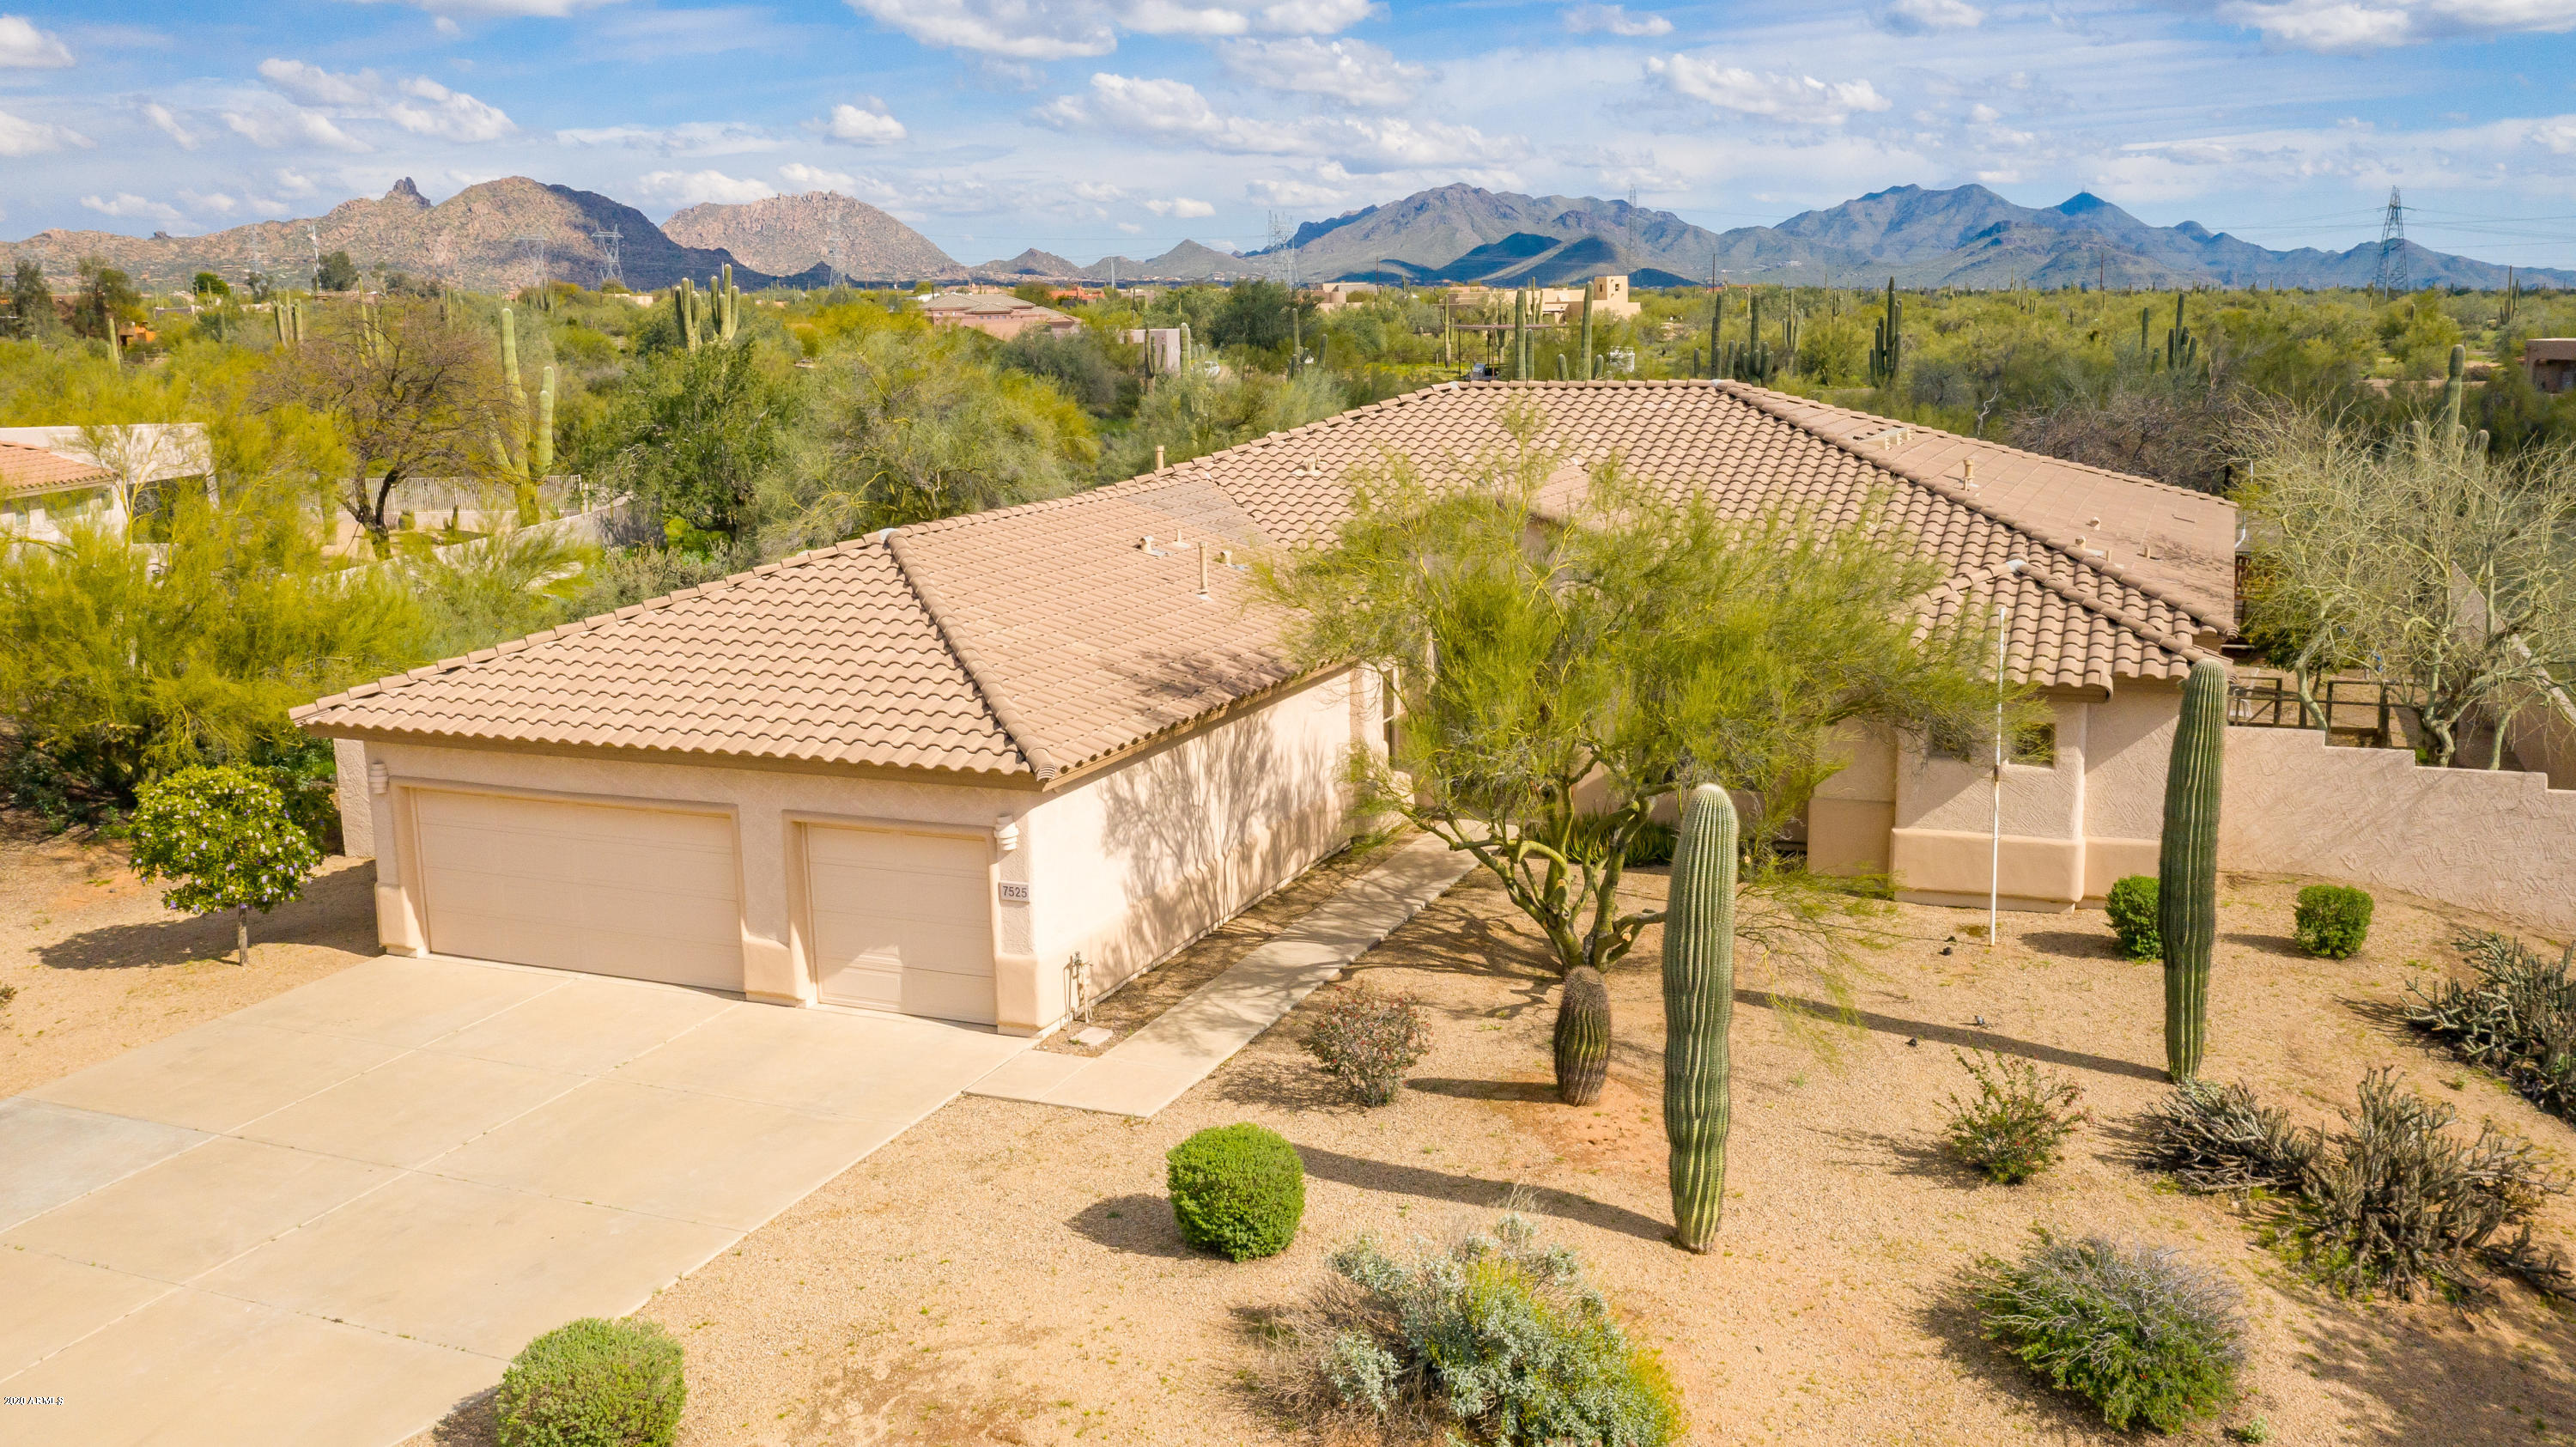 Photo of 7525 E MONTERRA Way, Scottsdale, AZ 85266